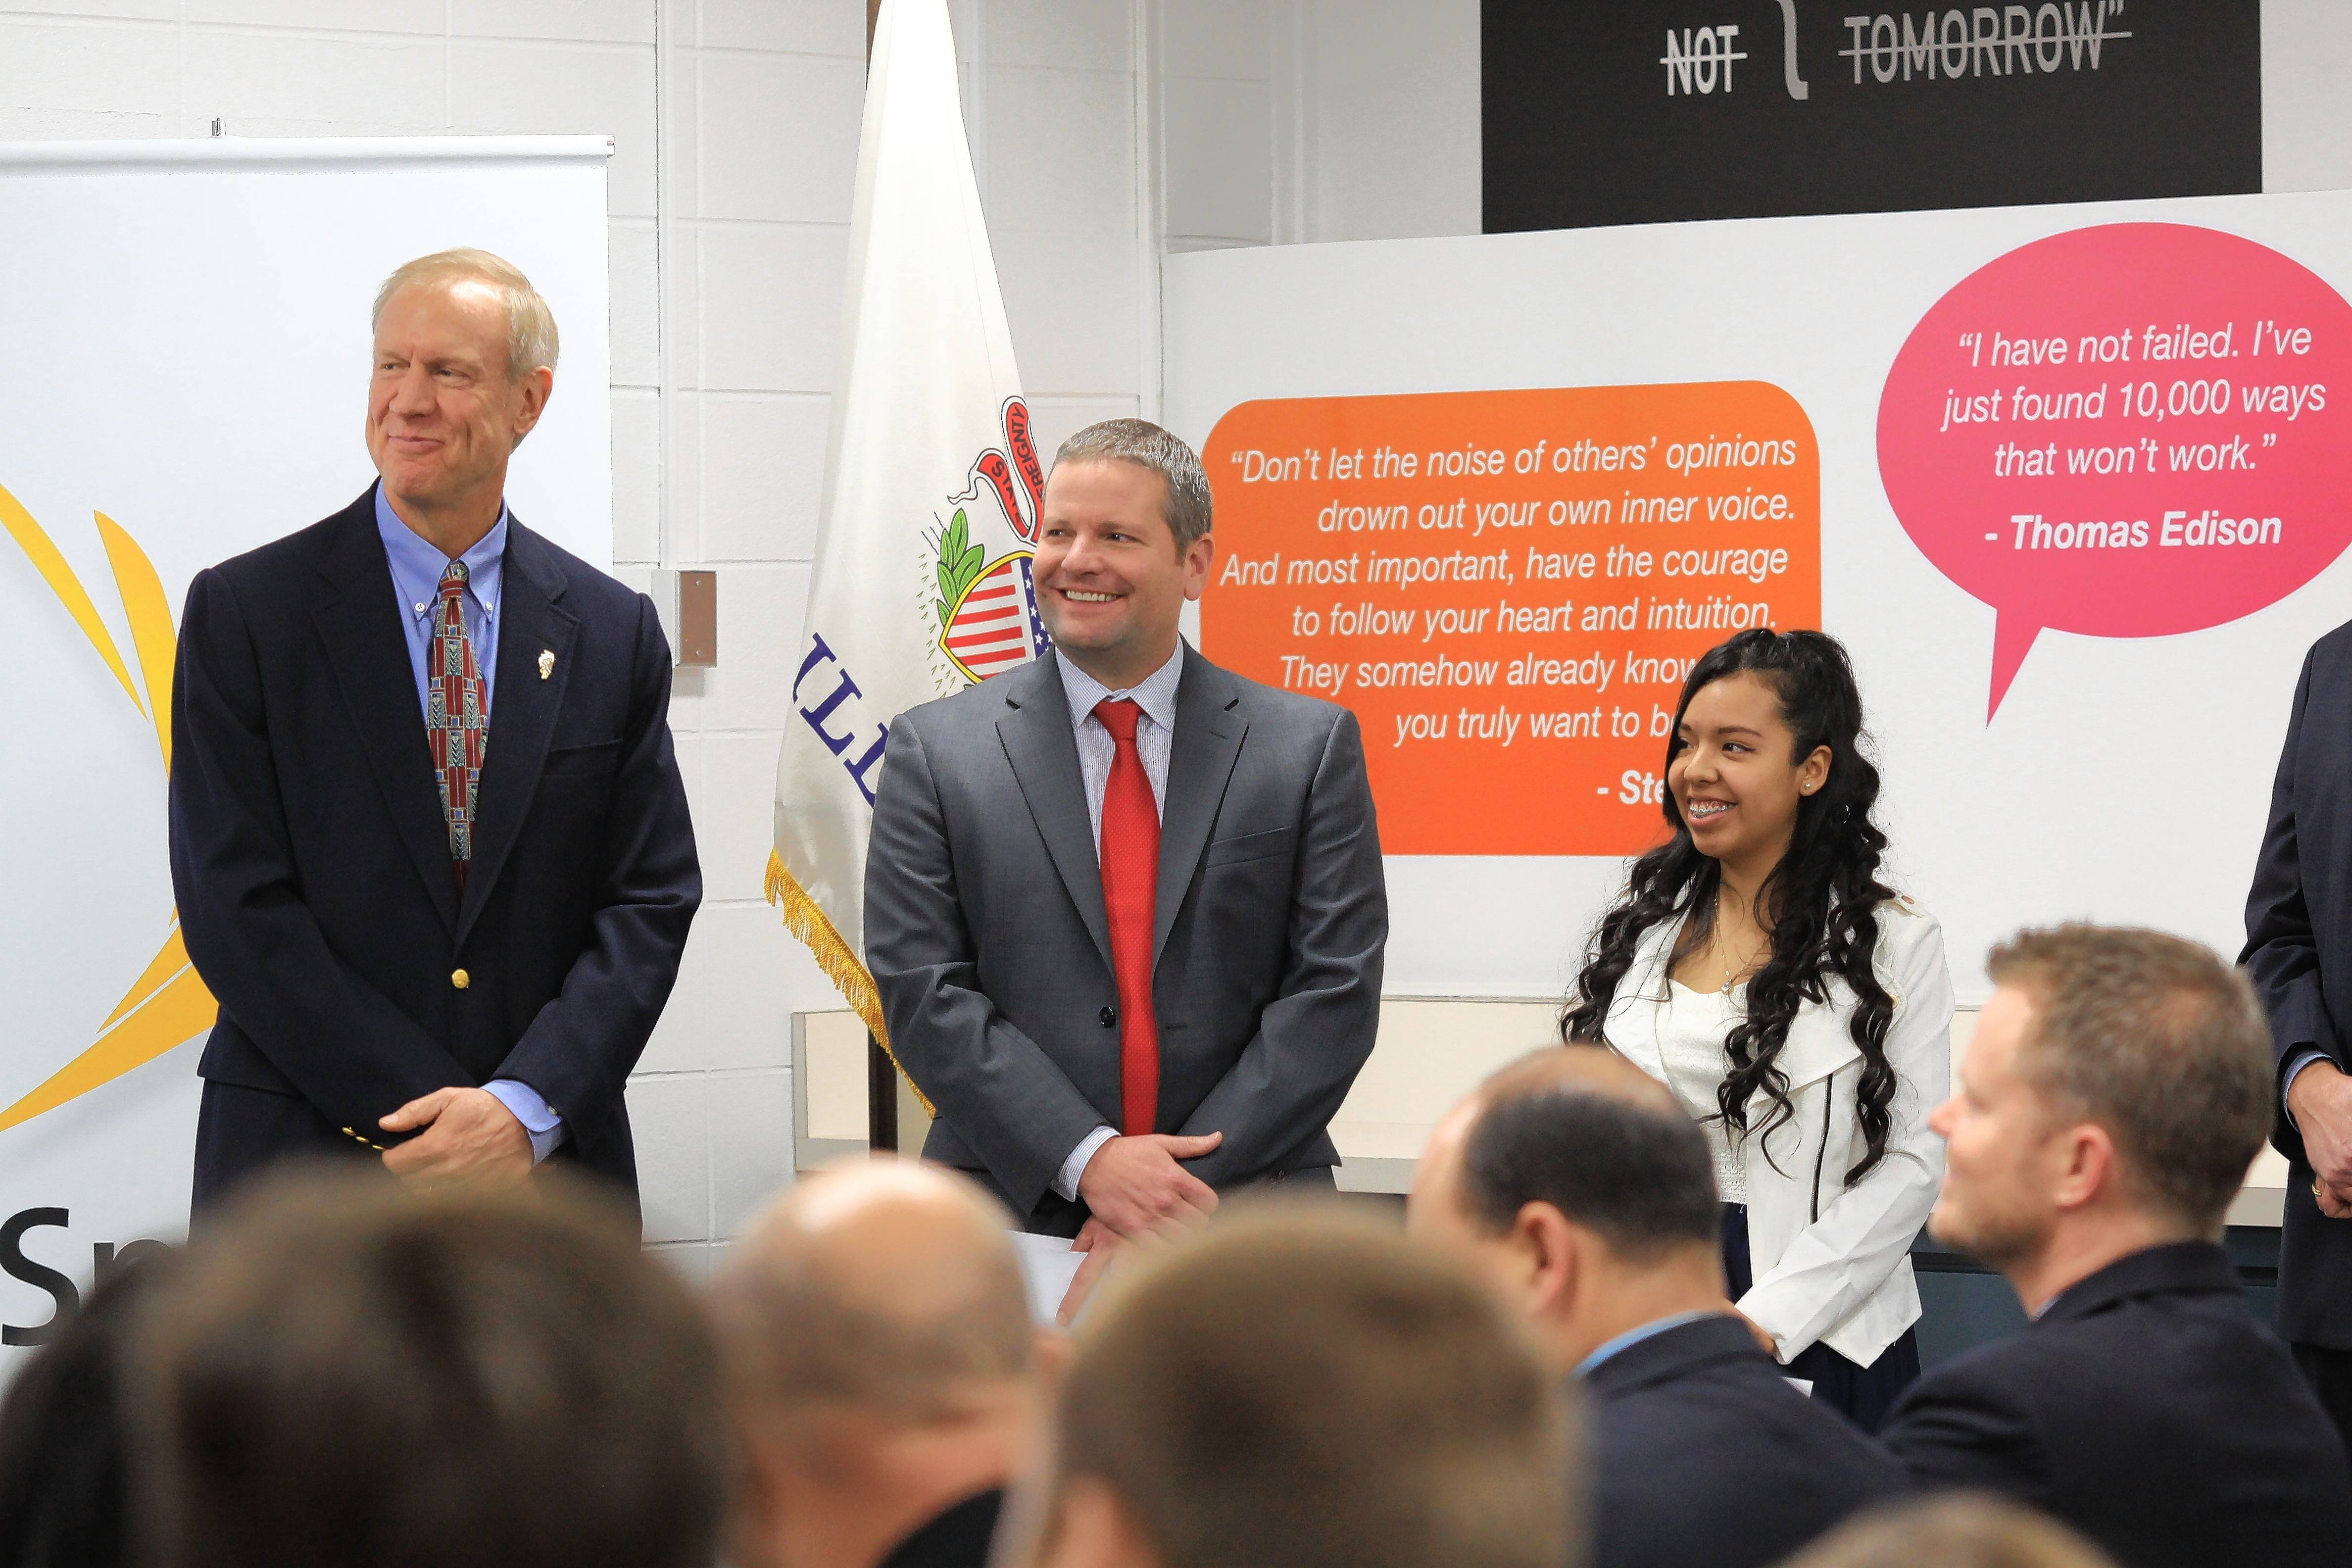 Gov. Bruce Rauner criticized Donald Trump's latest comments at Elk Grove High School Tuesday.